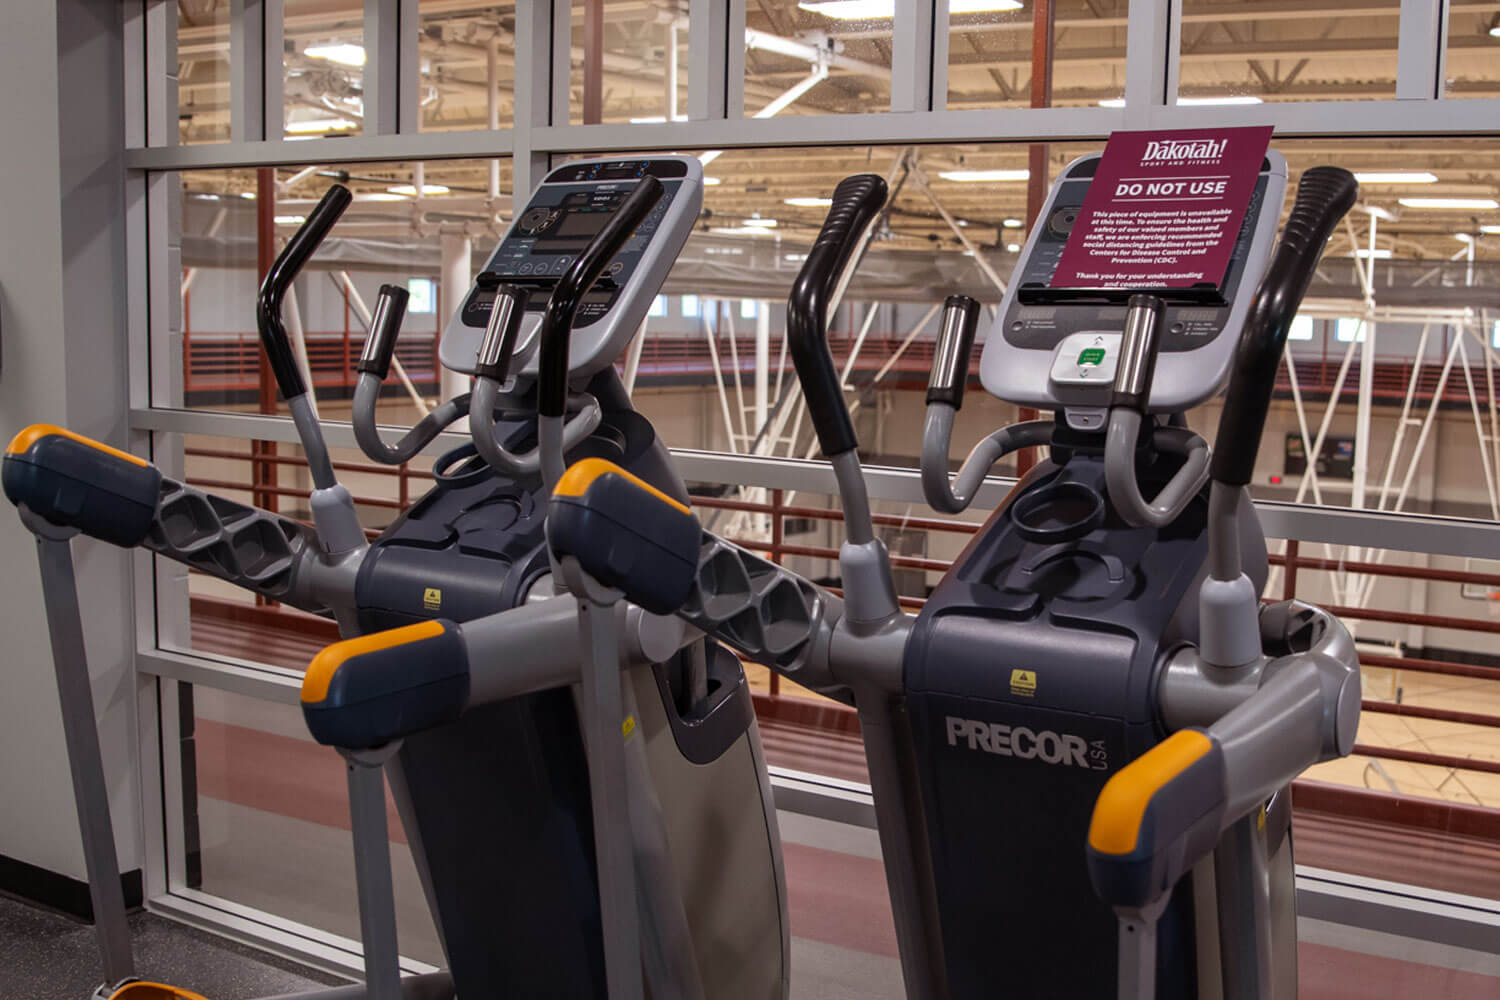 Work out machines with signage for proper spacing during COVID-19